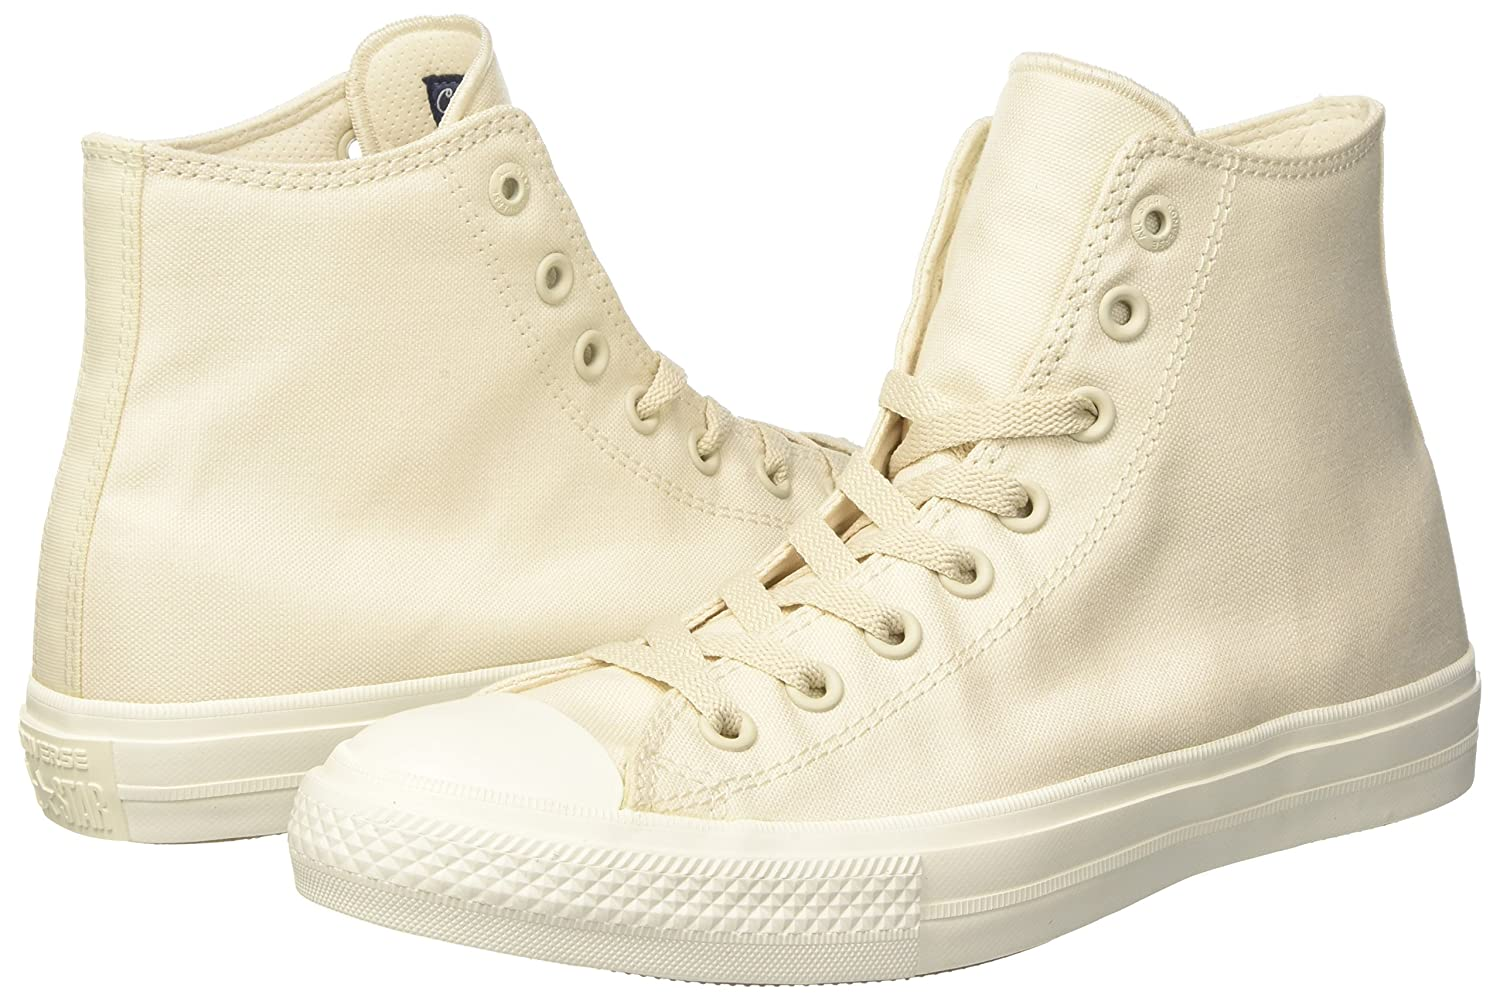 Converse Chuck Taylor All Star II High B000IBE9NU 14 B(M) US Women / 12 D(M) US Men|Parchment/Navy/White